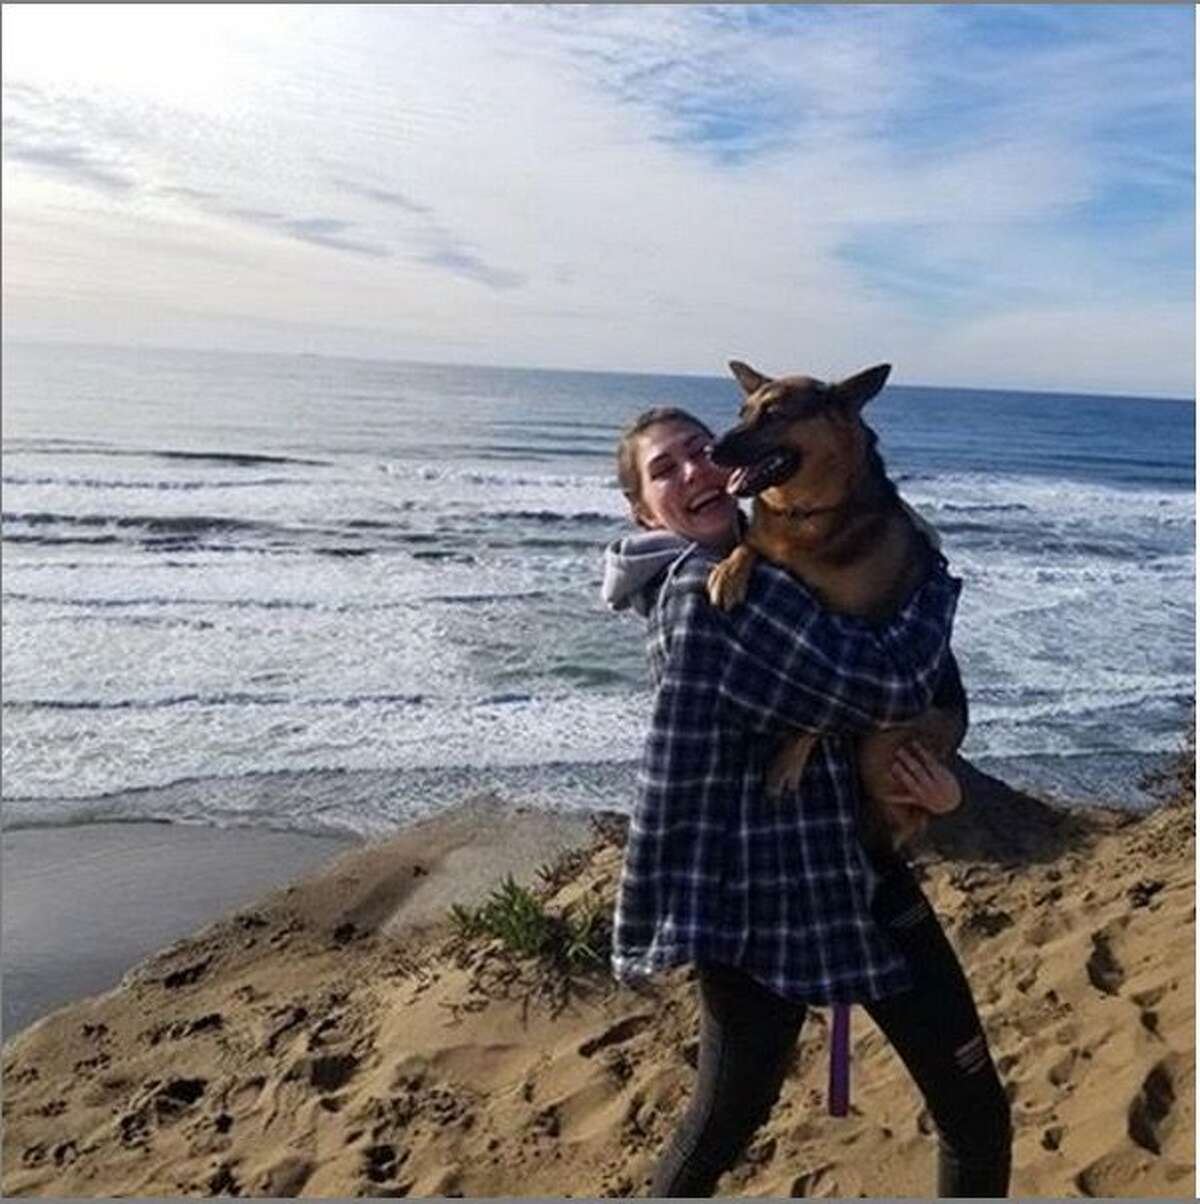 Kyra Sunshine Scarlet, 22, went missing last month after a cliff collapsed at Fort Funston. Scarlet's family confirmed Tuesday that her body had been recovered at the beach earlier in the week.